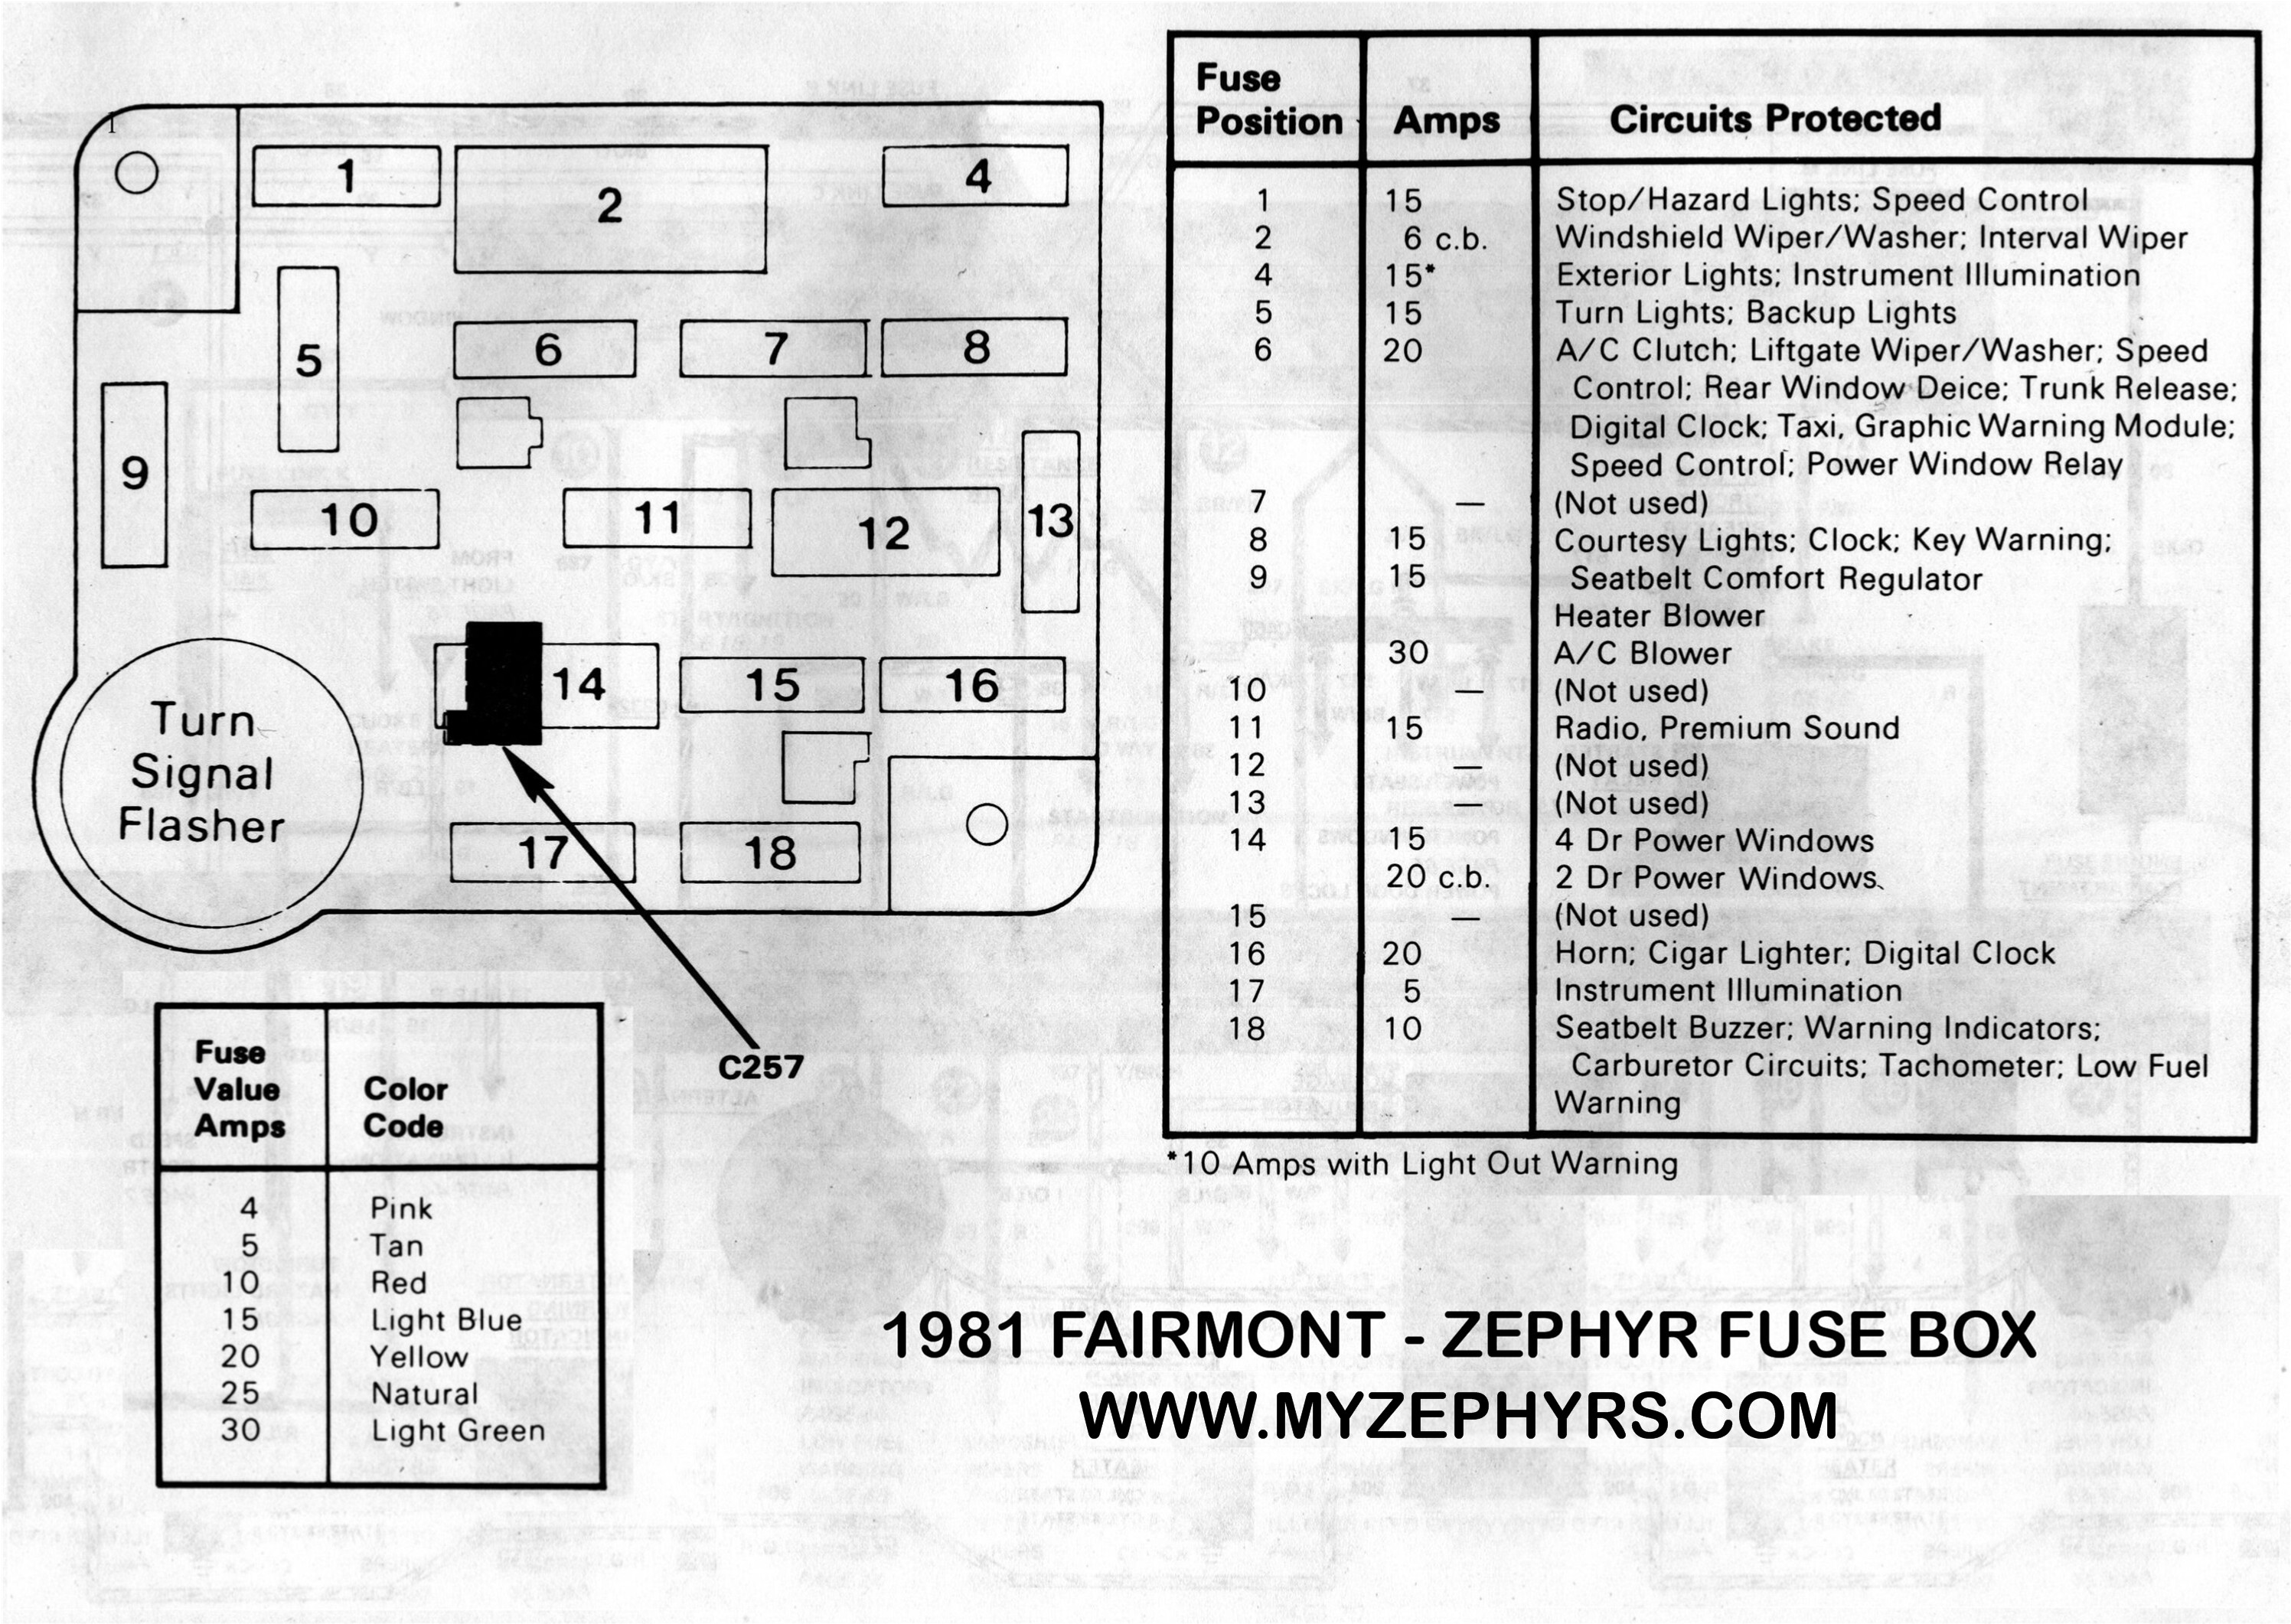 1978 Ford Fuse Box - Wiring Diagram Dash  Ford Edge Wiring Diagram on 2009 ford mustang wiring diagram, 2010 ford f350 wiring diagram, 2008 subaru tribeca wiring diagram, 2007 ford edge spark plug removal, 2011 ford super duty wiring diagram, 2011 ford focus wiring diagram, 2004 ford f-250 wiring diagram, 2008 ford mustang wiring diagram, 2006 ford crown victoria wiring diagram, 2014 ford f150 wiring diagram, 2008 ford crown victoria wiring diagram, 2007 ford expedition wiring-diagram, 2007 ford edge exhaust, 2003 ford excursion wiring diagram, 2007 ford edge manual, 1995 ford aspire wiring diagram, 2012 ford escape wiring diagram, 2001 ford explorer sport wiring diagram, 2010 ford mustang wiring diagram, 1995 ford crown victoria wiring diagram,